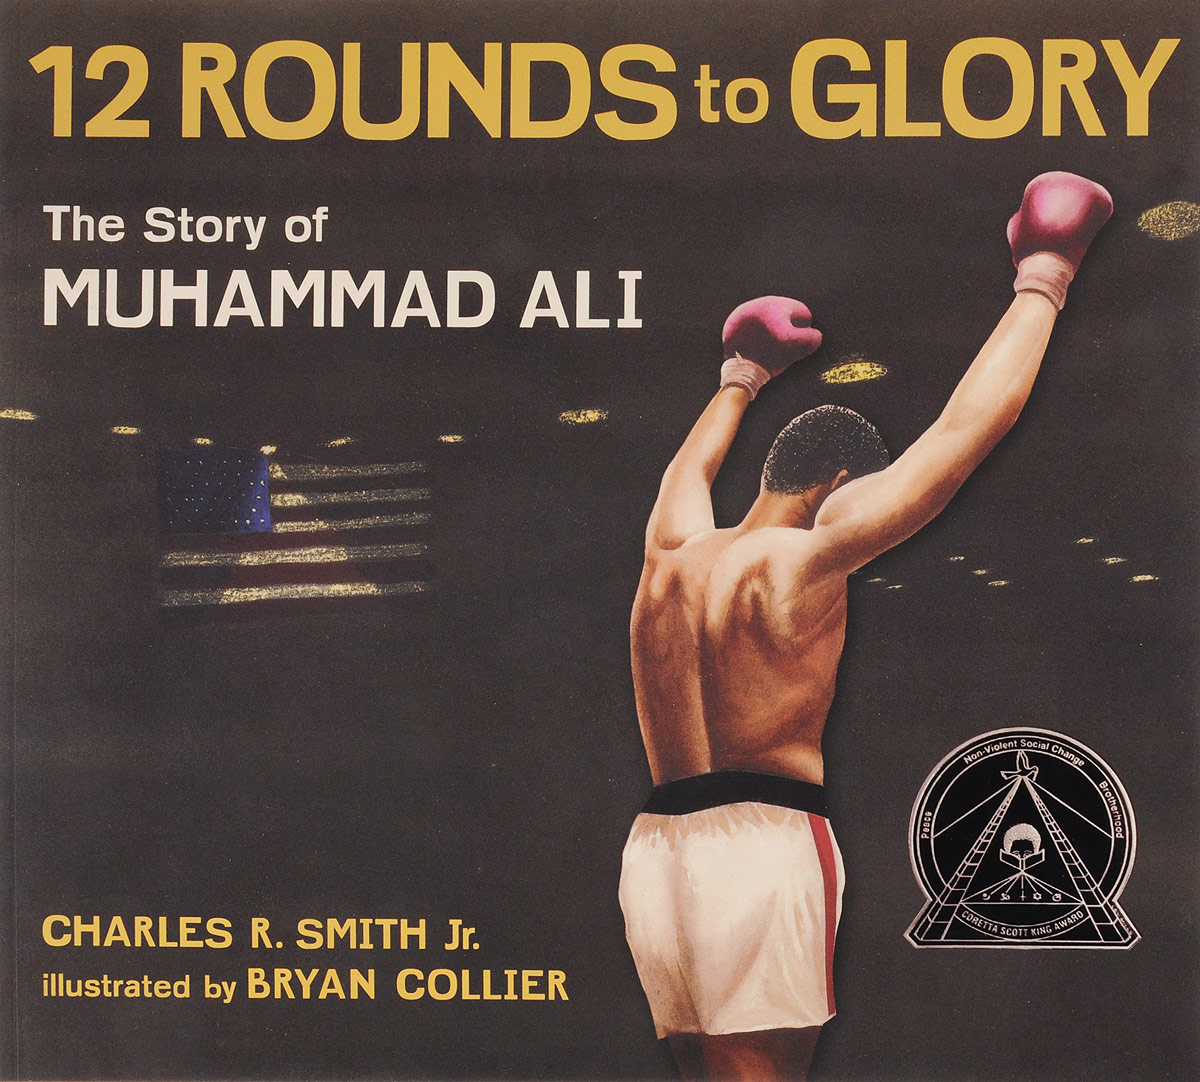 12 Rounds to Glory: The Story of Muhammad Ali